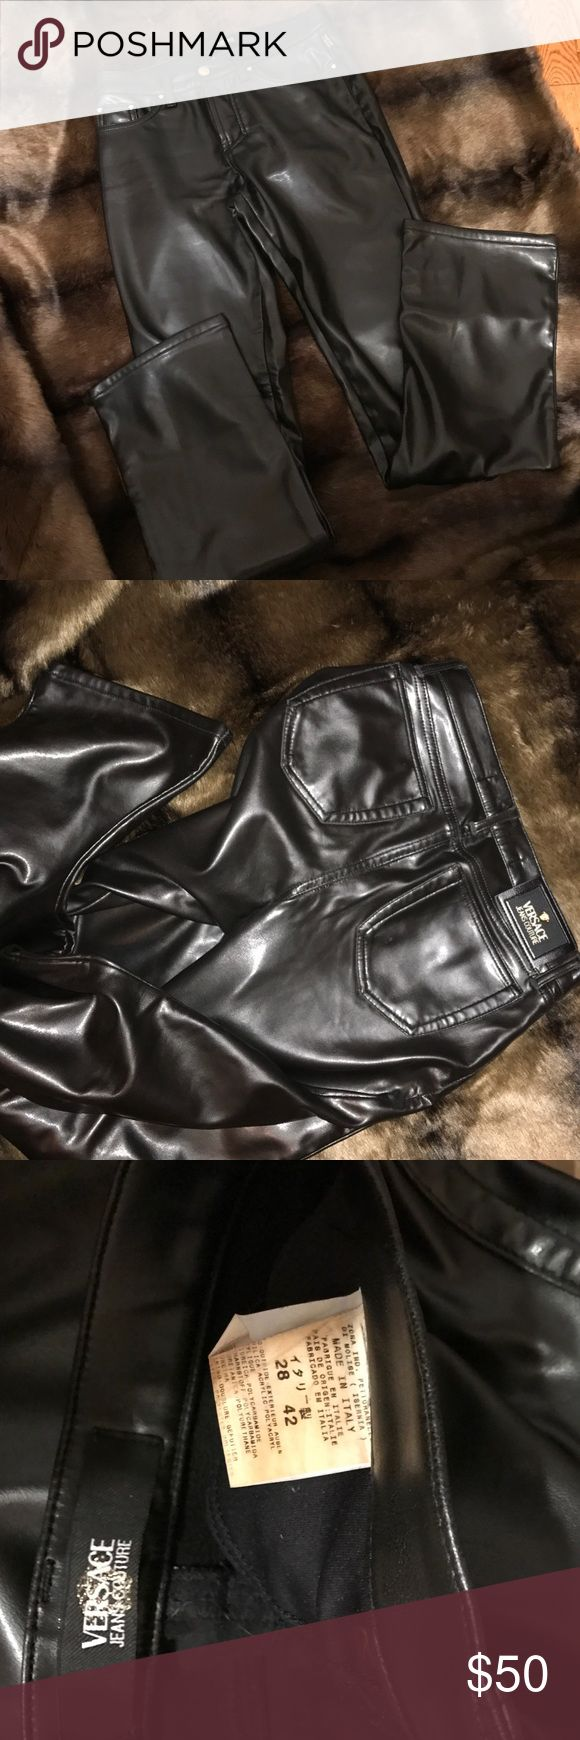 """Versace black faux leather pants Versace black faux leather pants, 32 inch inseam, 33"""" waist.  As shown in the last picture, the stitching is coming out just a little bit on the rear end, which can probably be very easily mended, if you feel it's necessary.  Offers are welcomed! Versace Pants Trousers"""